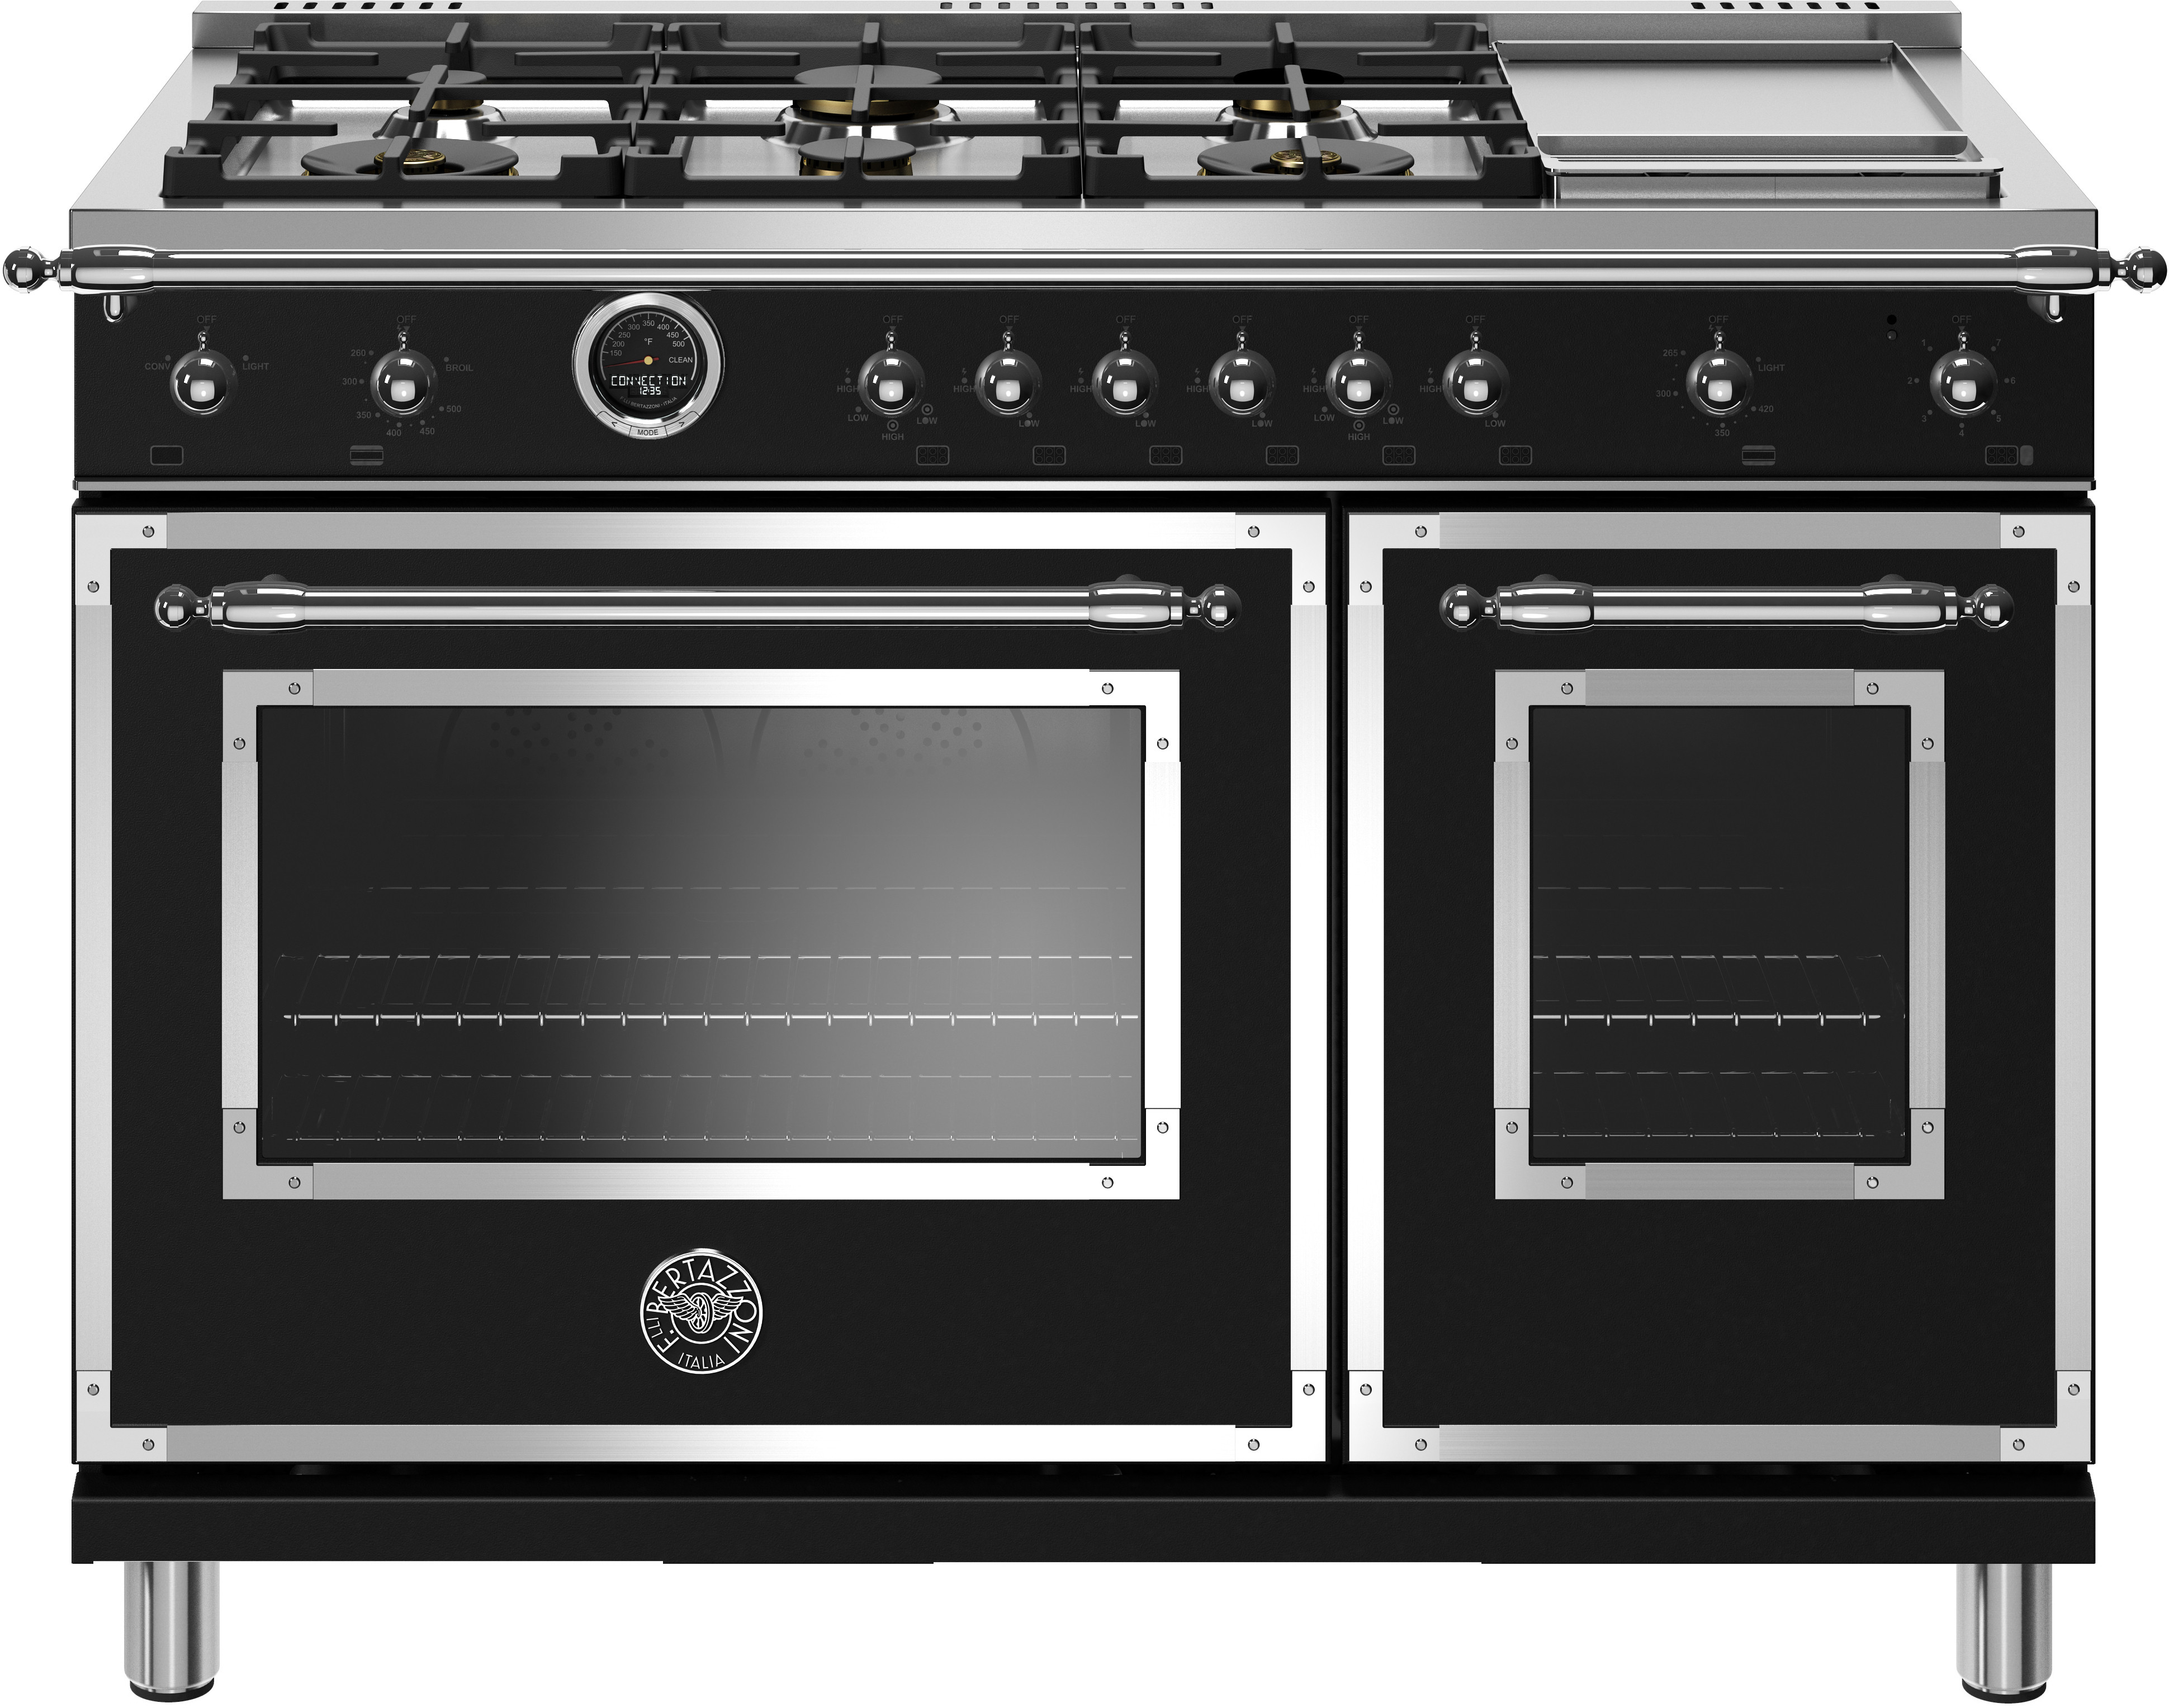 Bertazzoni Range 48inch in Black color showcased by Corbeil Electro Store